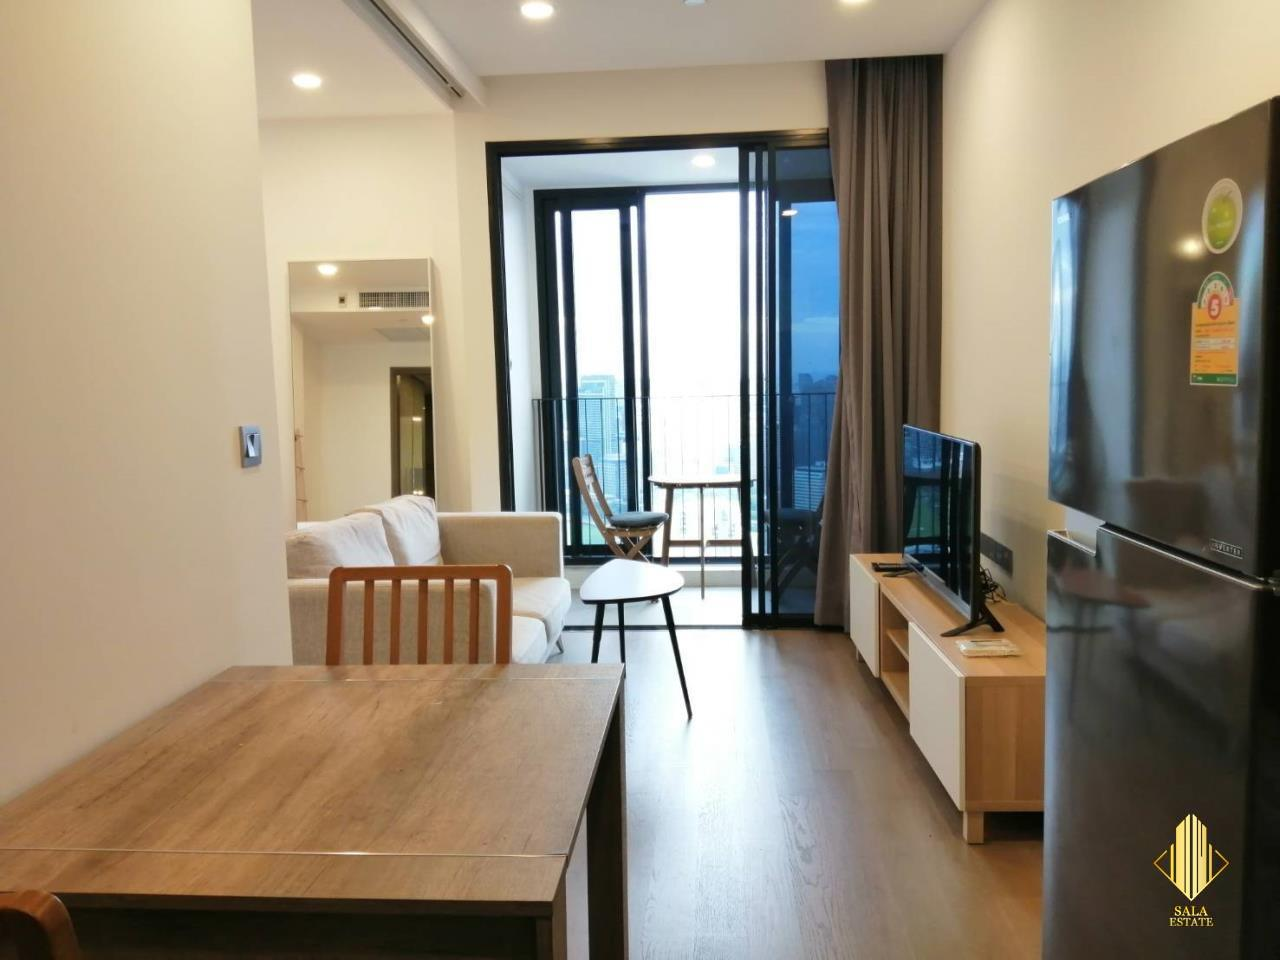 SALA ESTATE Agency's ( FOR RENT ) ASHTON CHULA SILOM – MRT SAMYAN, 40 SQM 1 BEDROOM 1 BEDROOM, FULLY FURNISHED, HIGH FLOOR 1